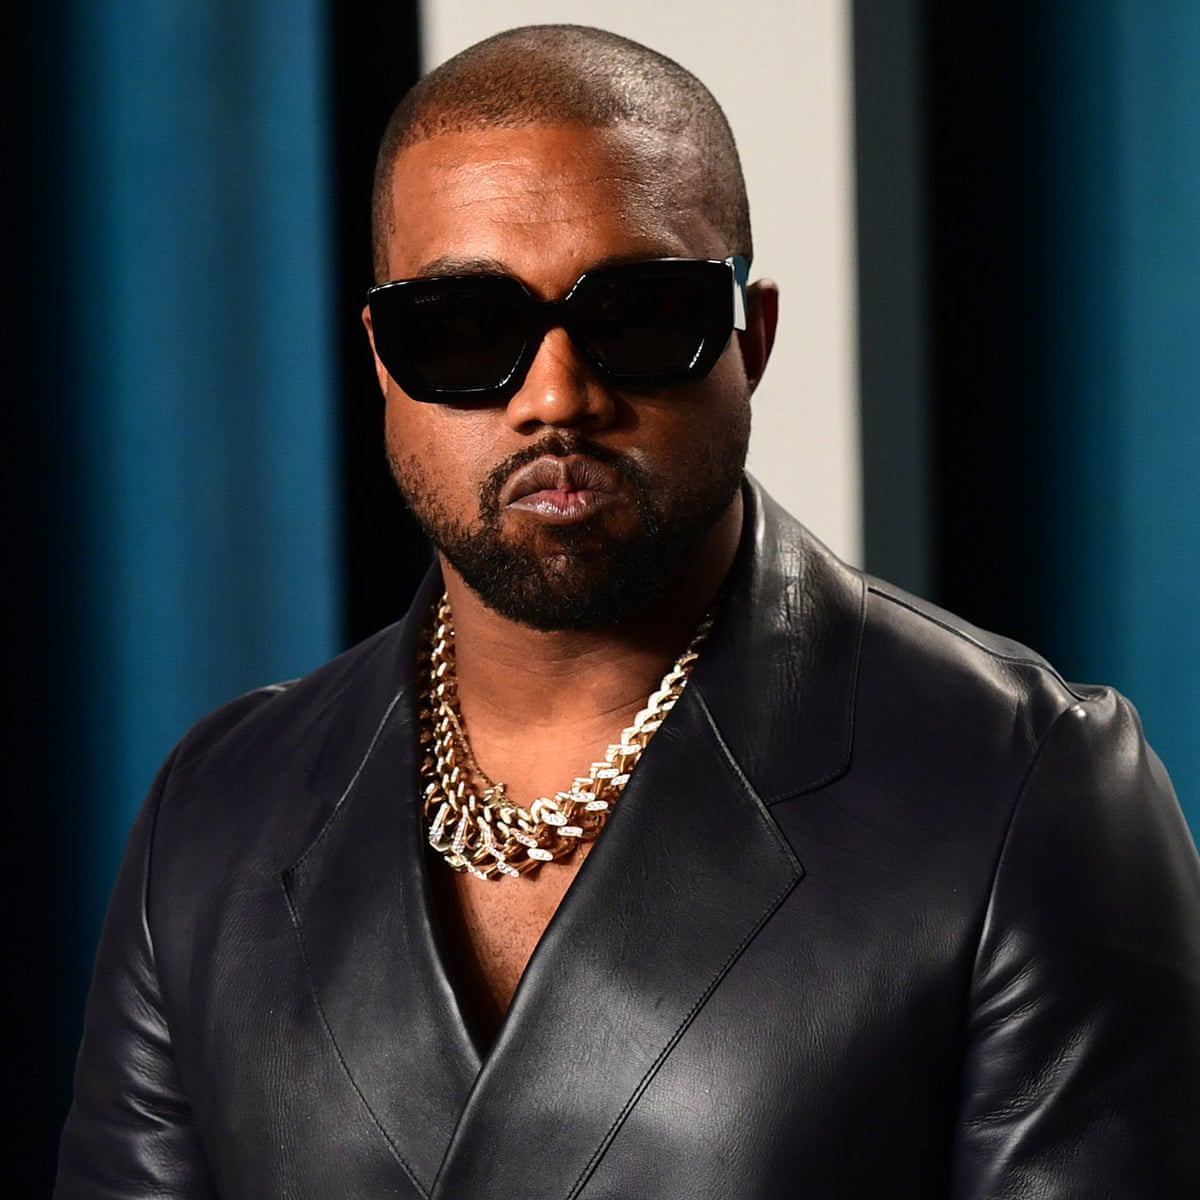 Kanye West Becomes The Richest Black Man In The US